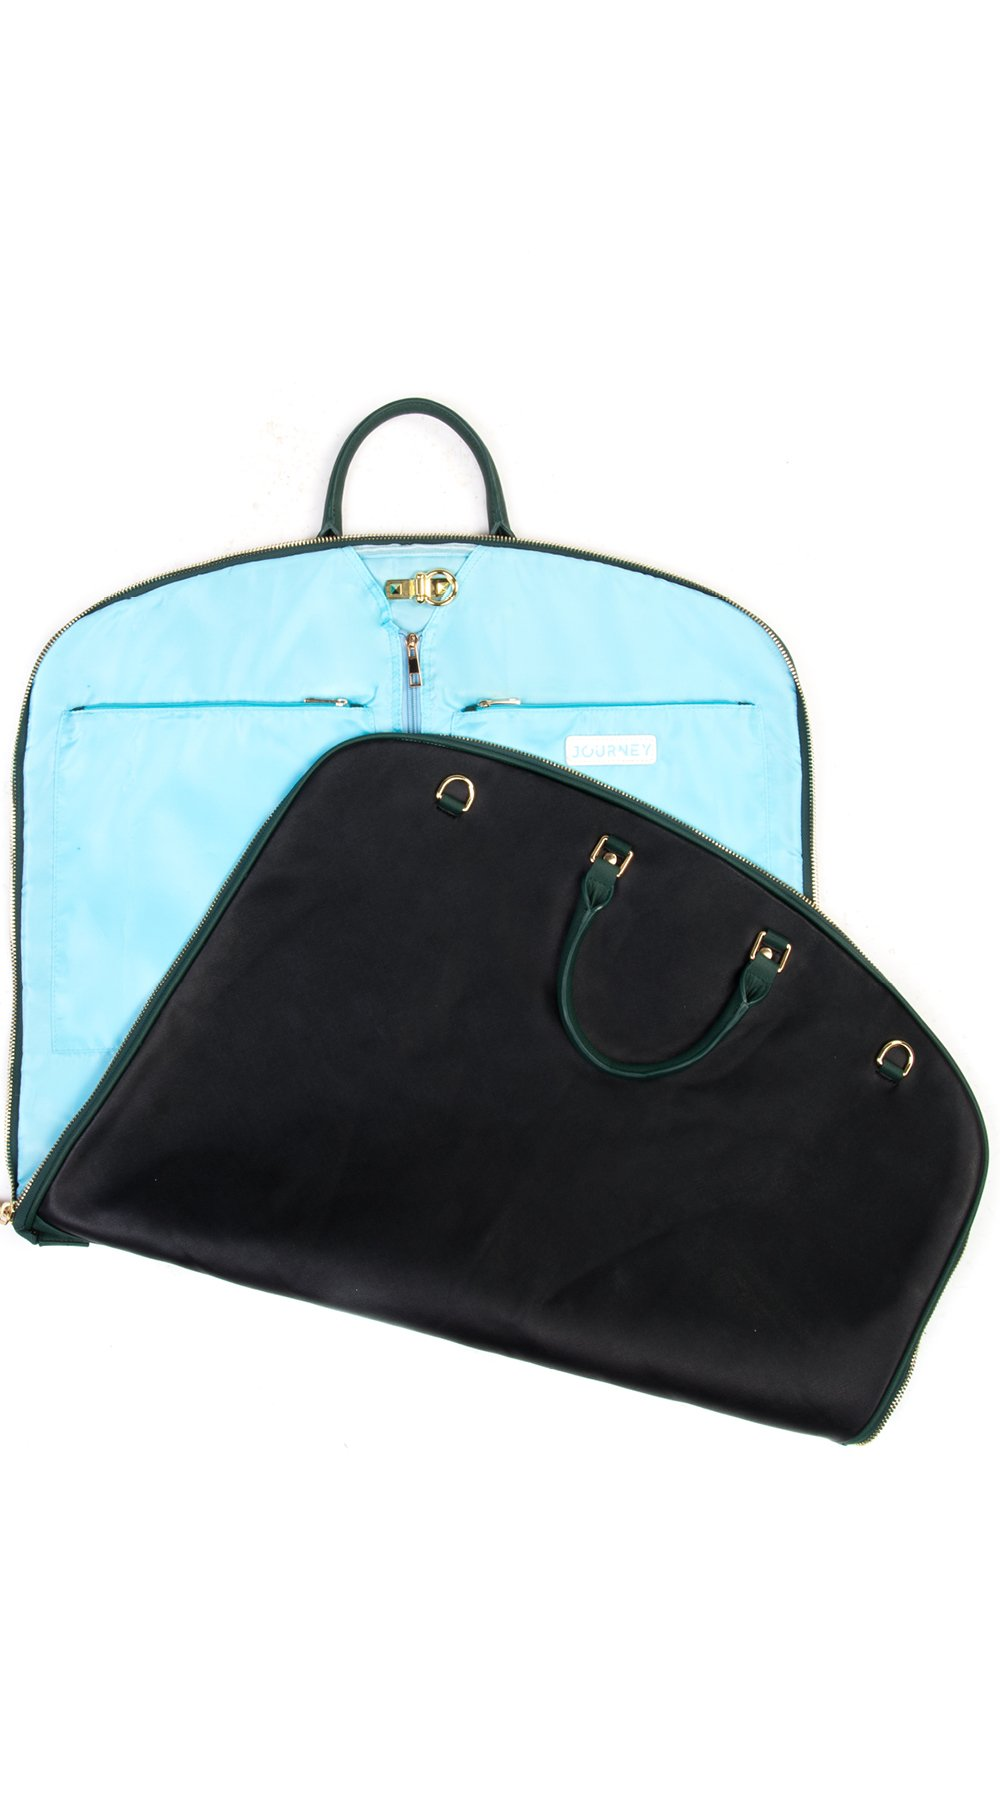 Garment Bag - Black/Green - Smith & Jones Australia